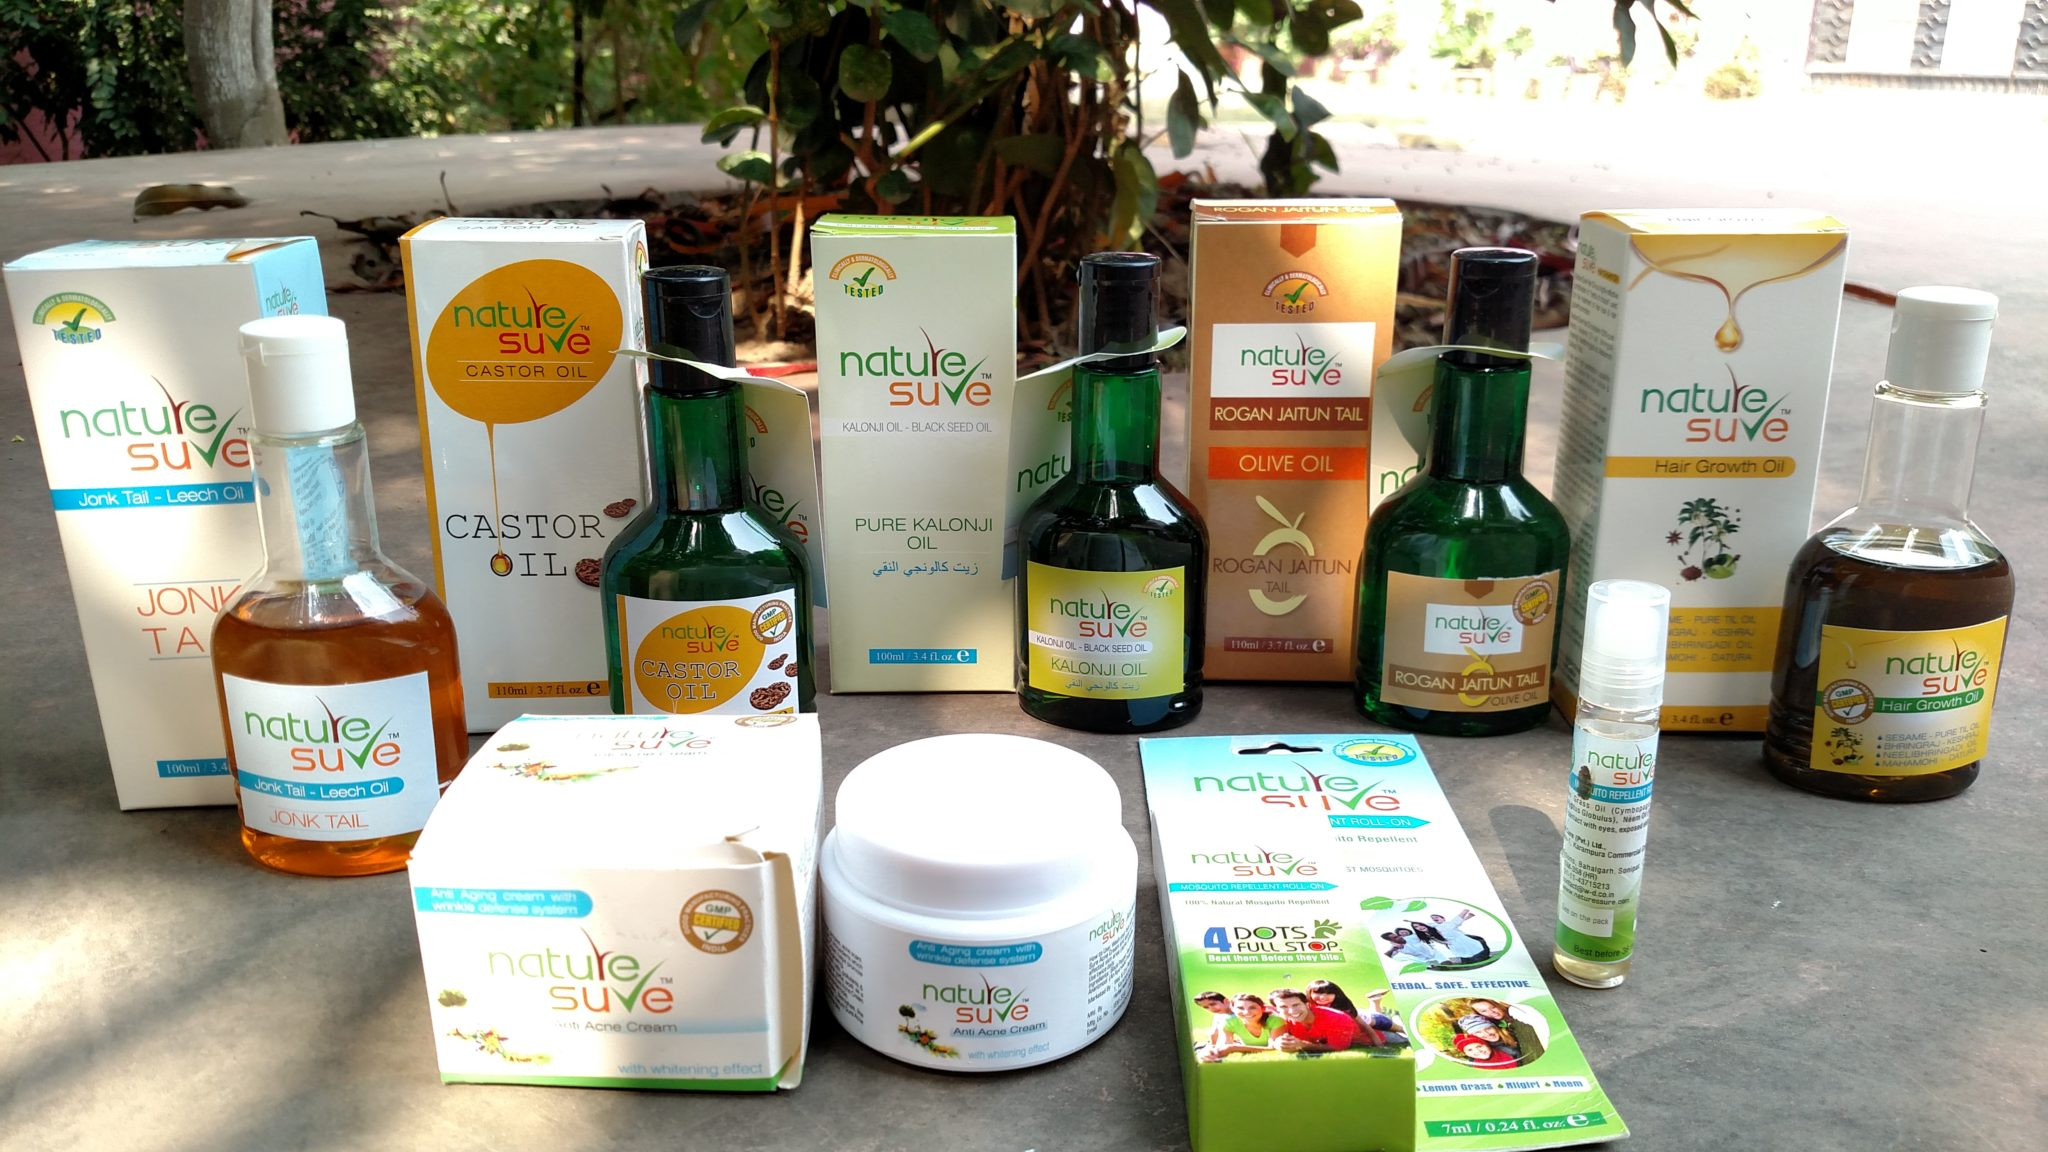 NATURE SURE: Natural & Herbal Products for Personal Care